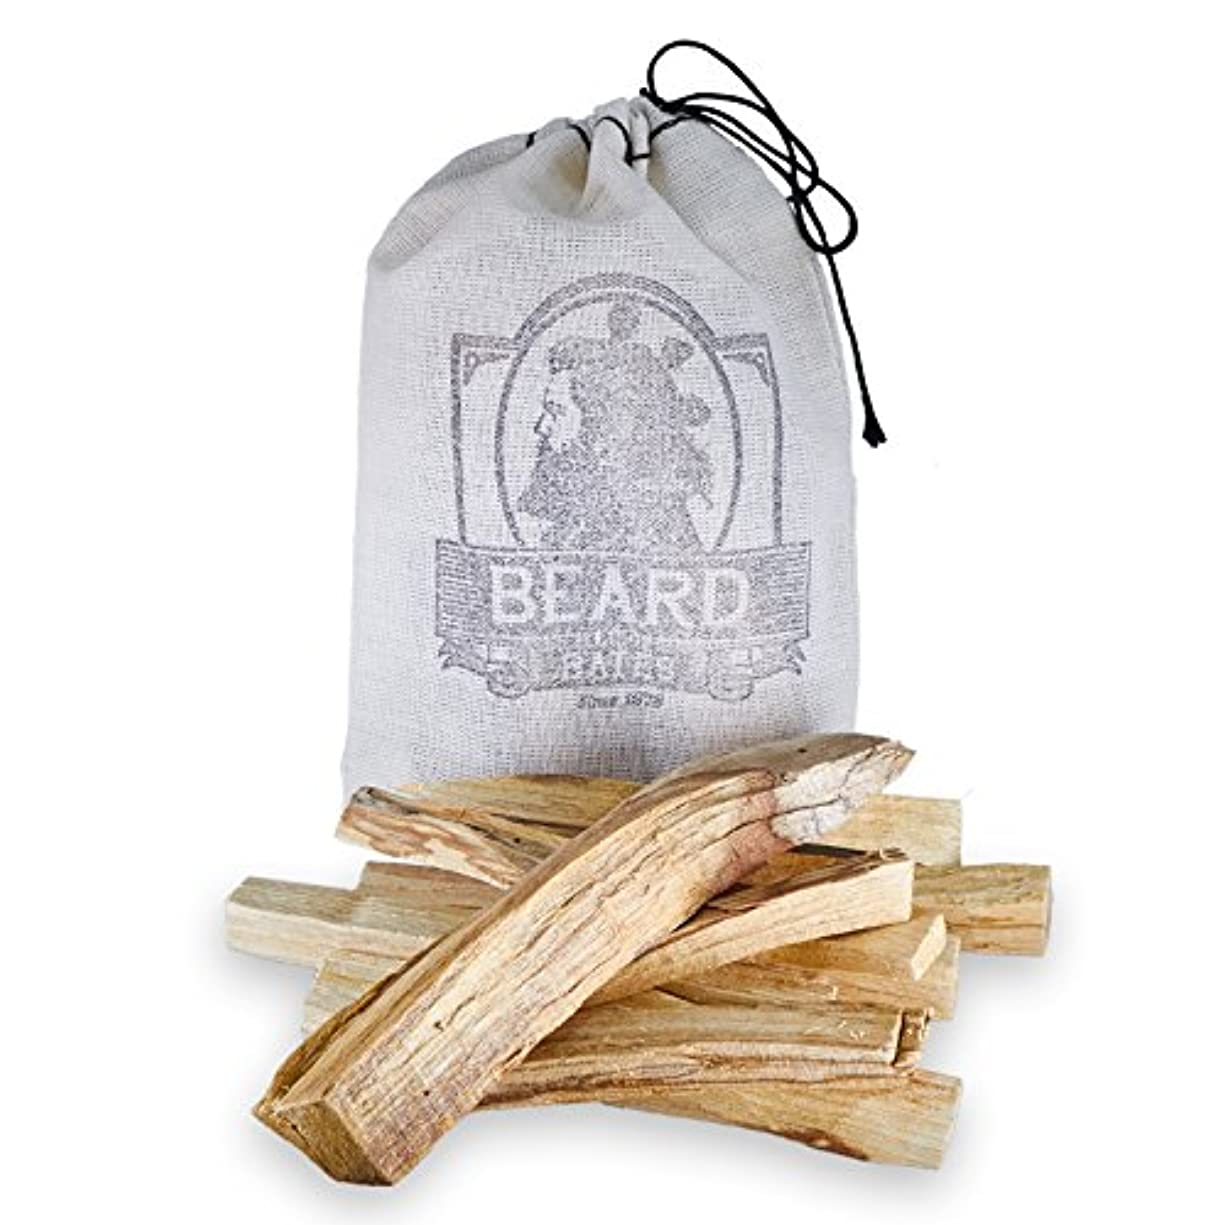 補充一定縮れたBeard & Bates | Palo Santo – Extra Large、Handcut、Sustainably Wild Harvested Incense Sticks for瞑想、クレンジング、Stress...